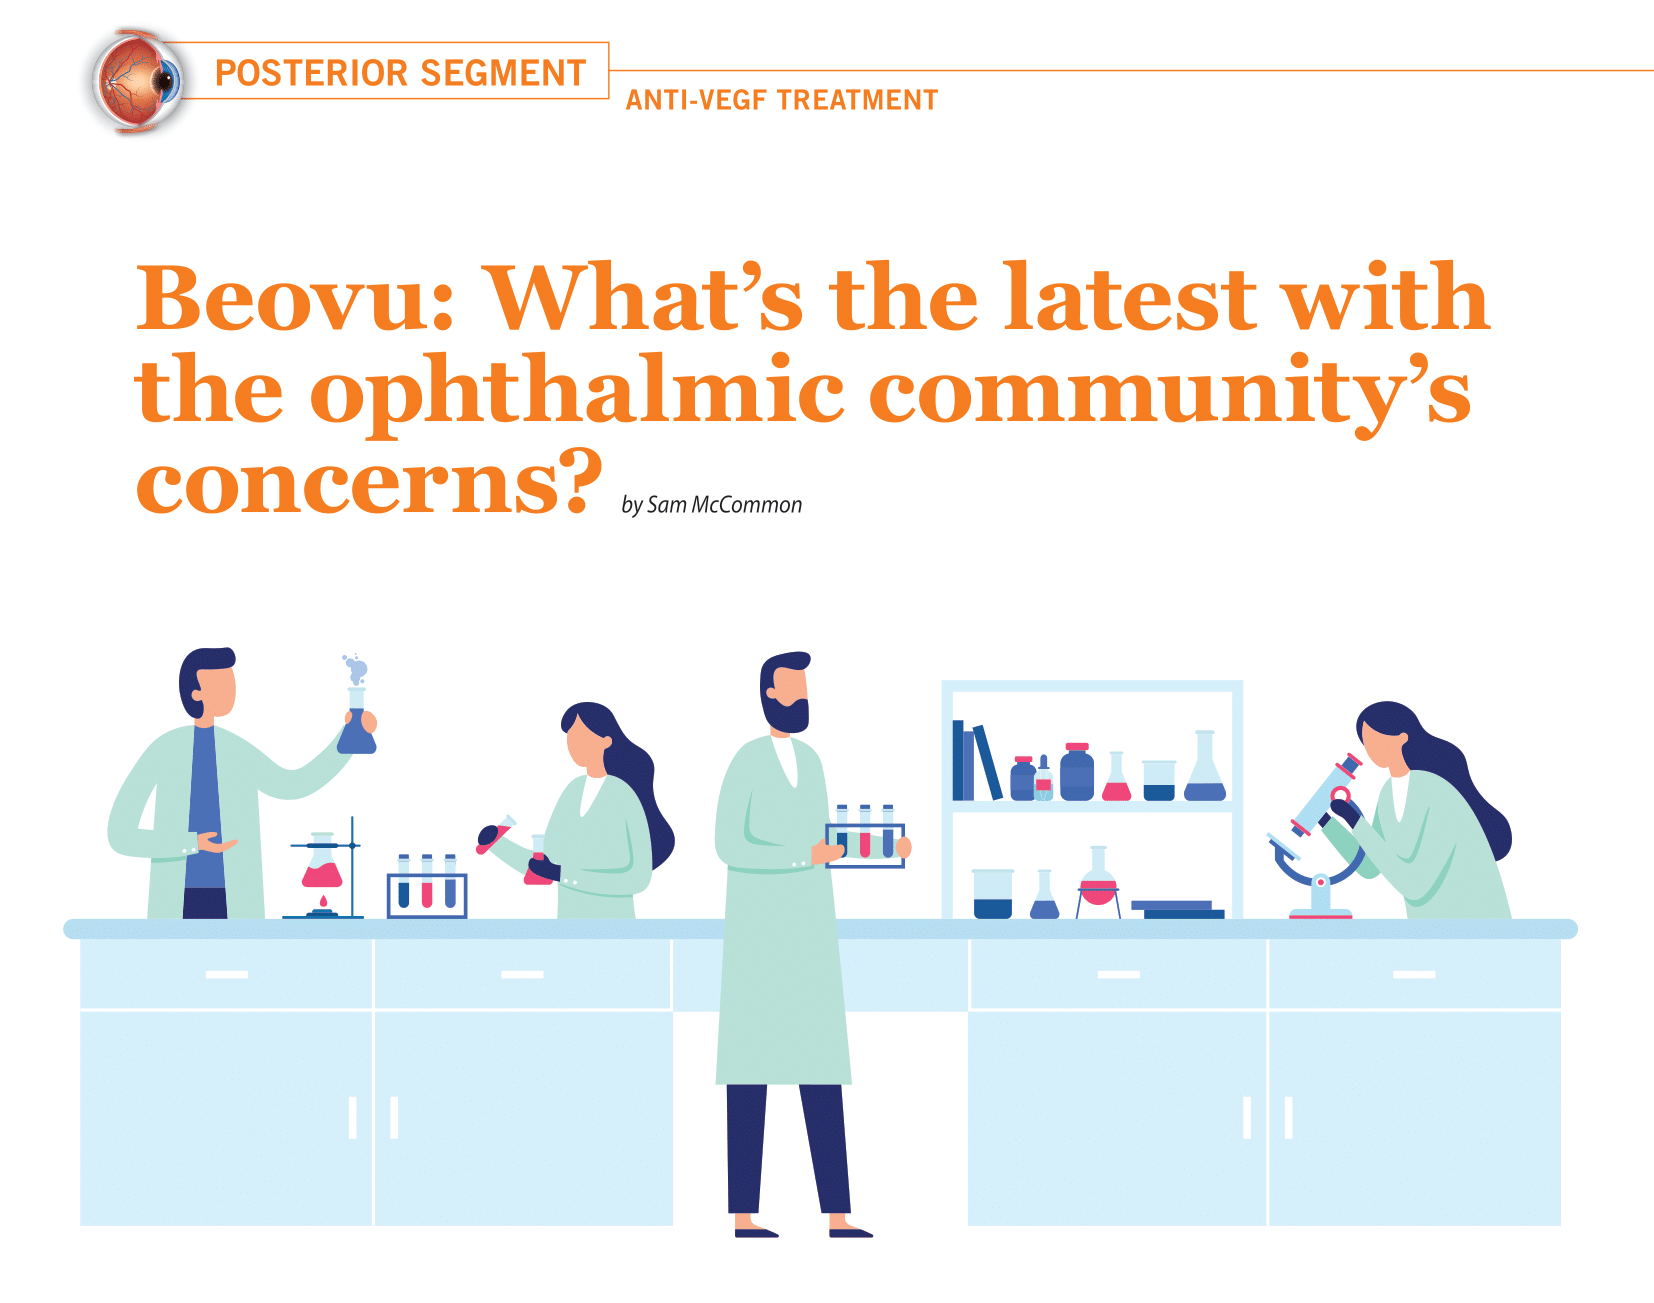 Beovu: What's the latest with the ophthalmic community's concerns?